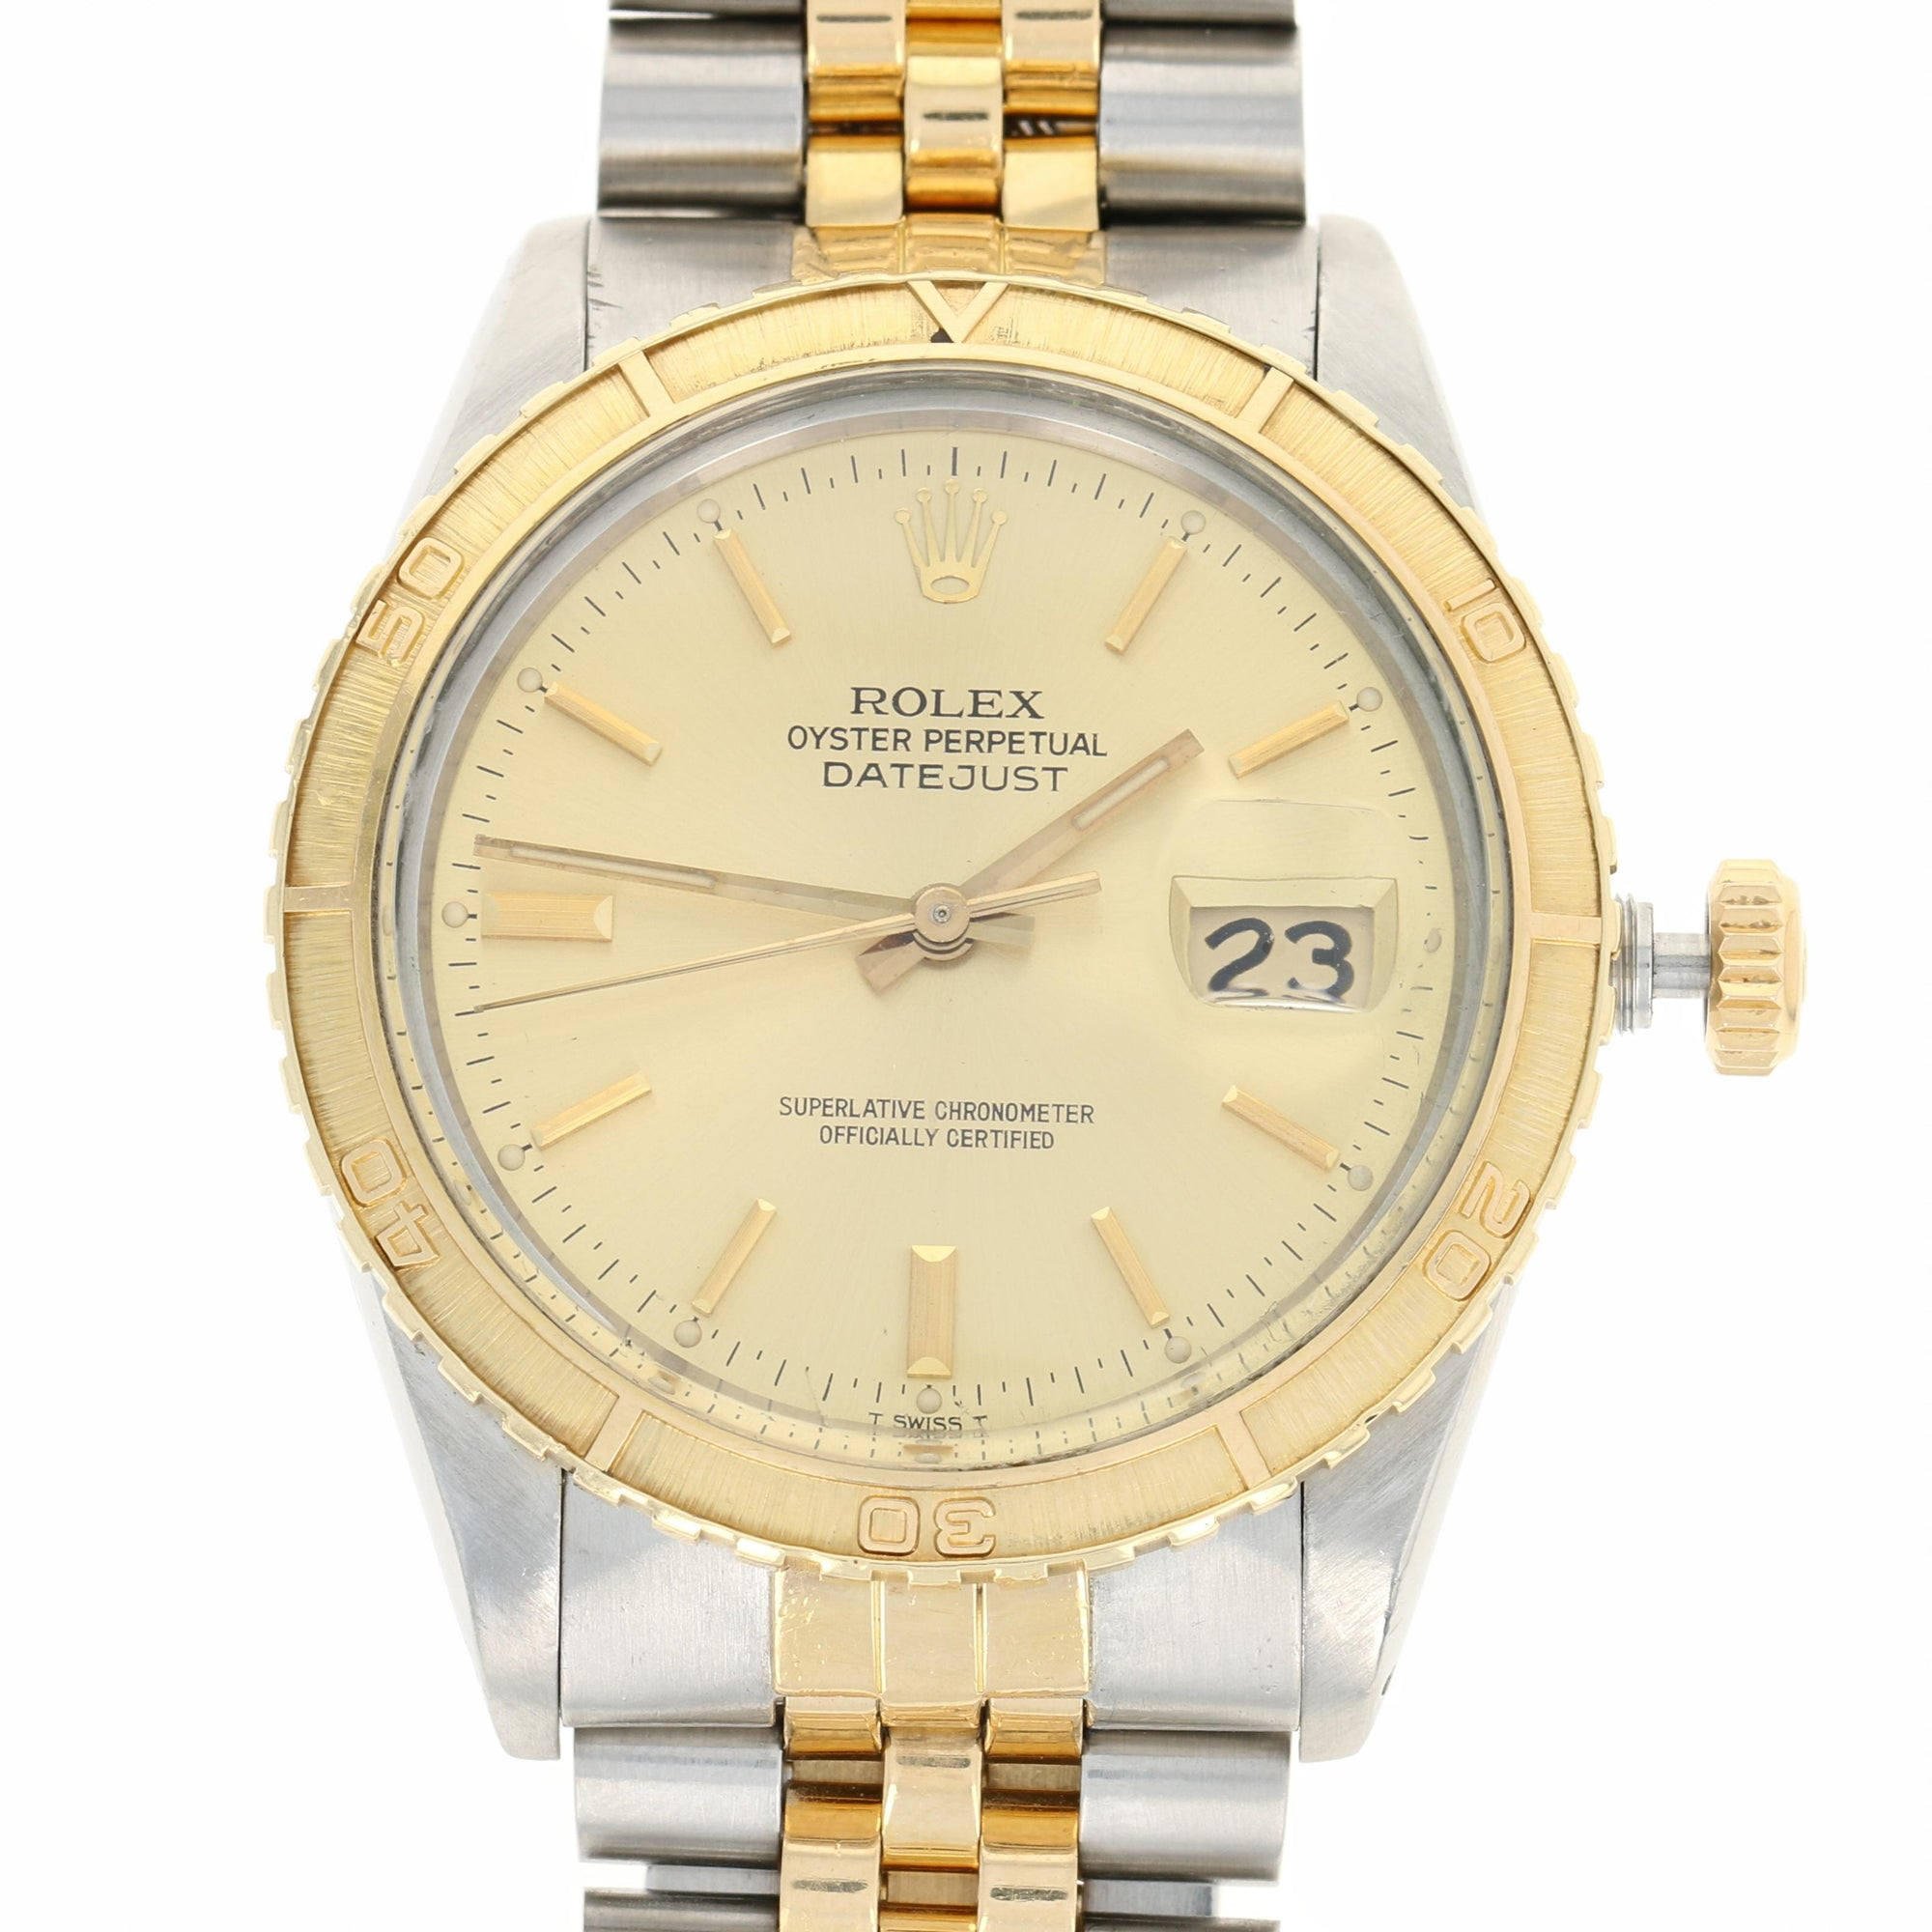 Rolex Datejust Watch Thunderbird Stainless Steel 18k Gold 16253